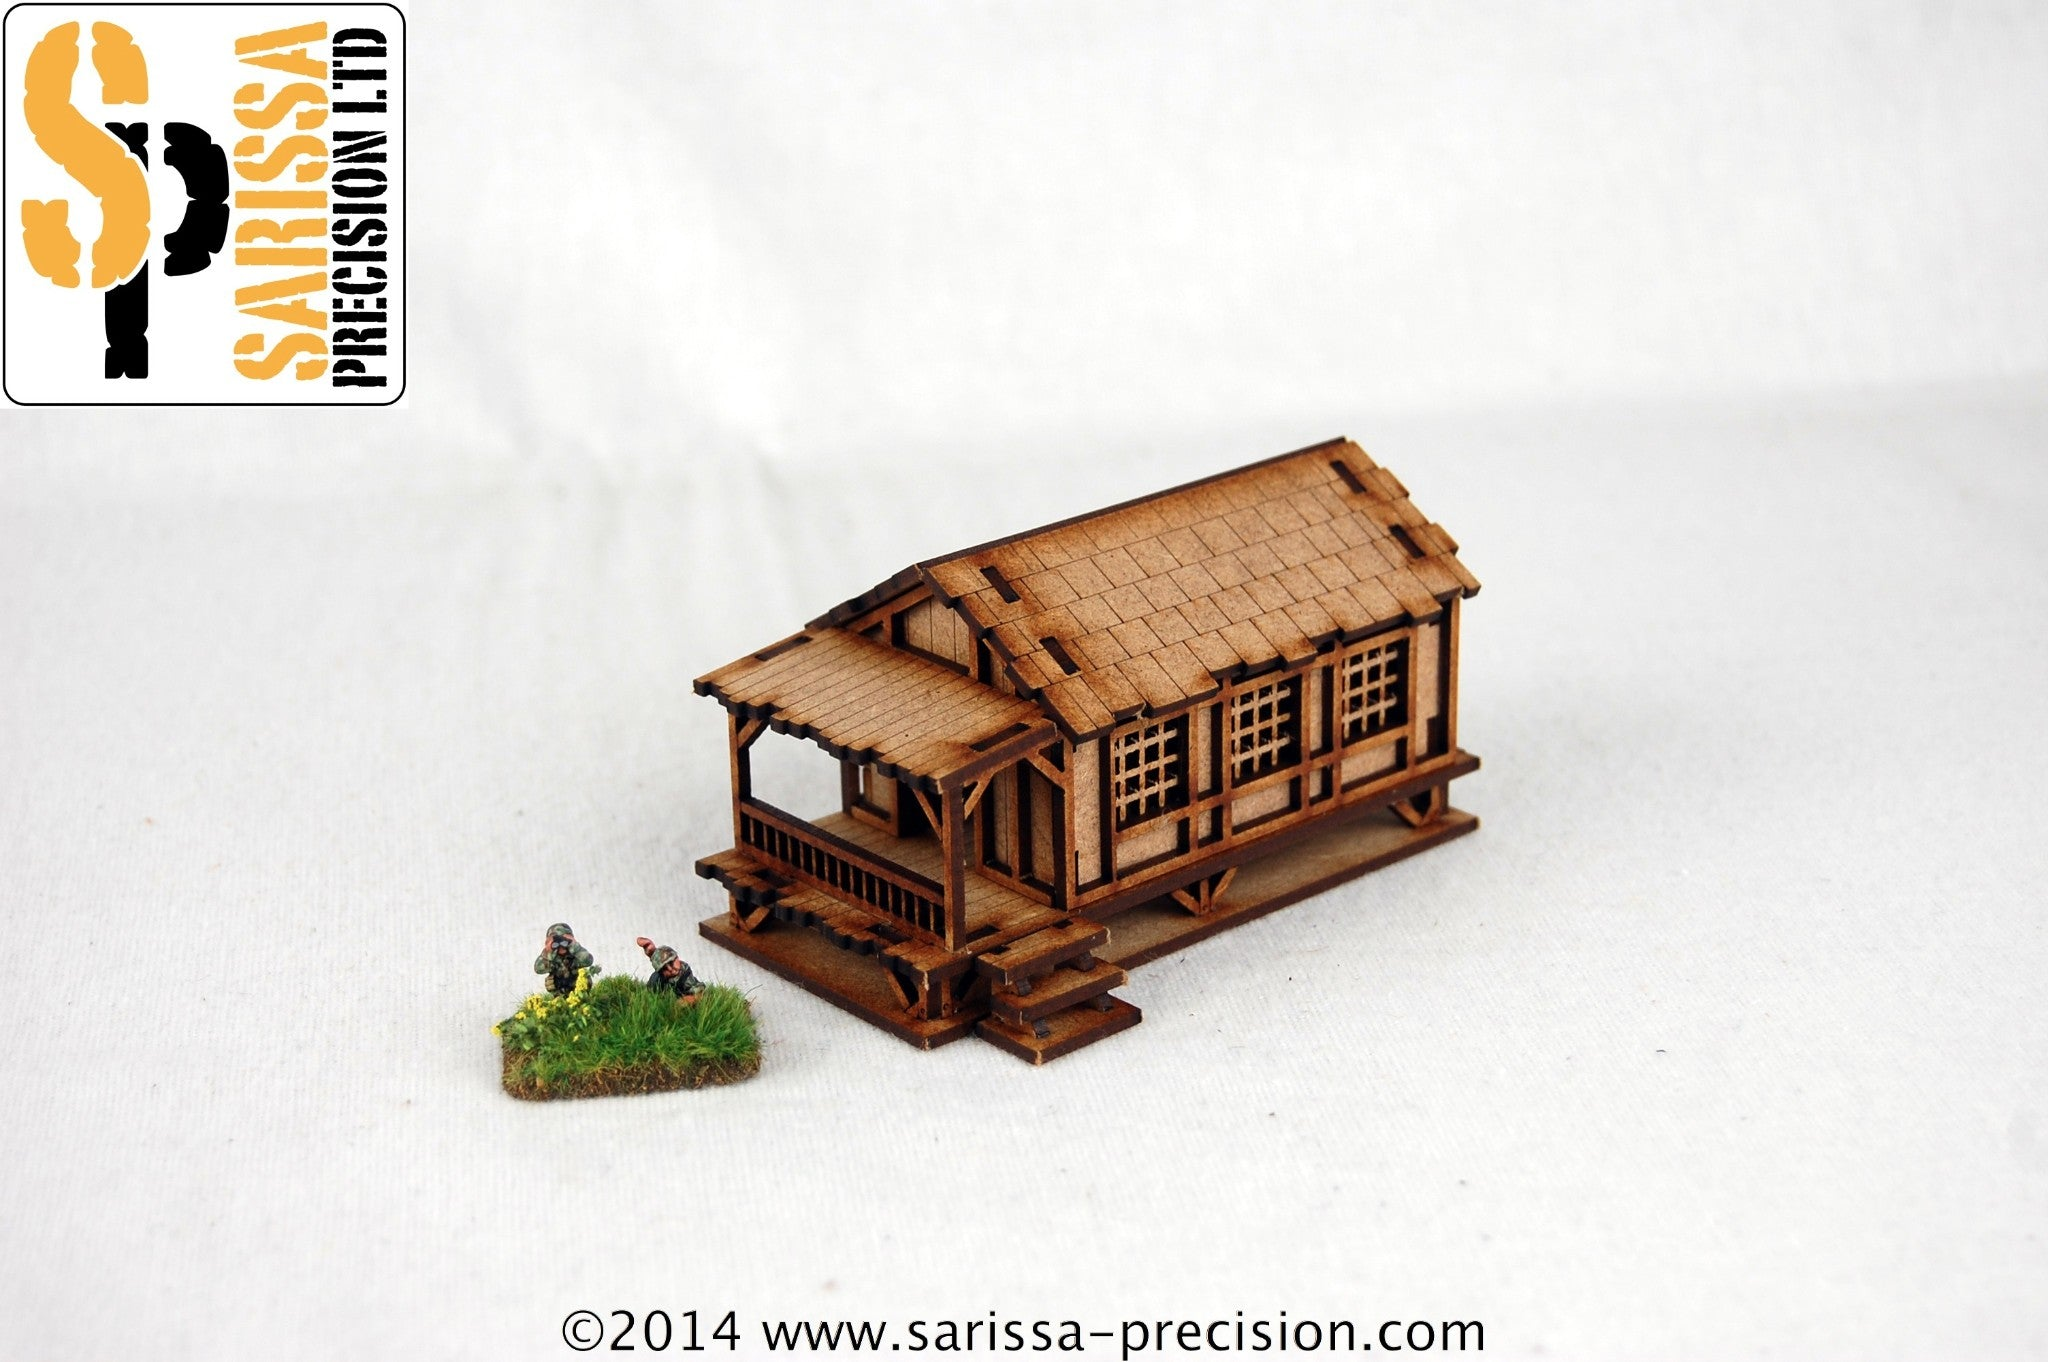 Low Small Village House - 15mm